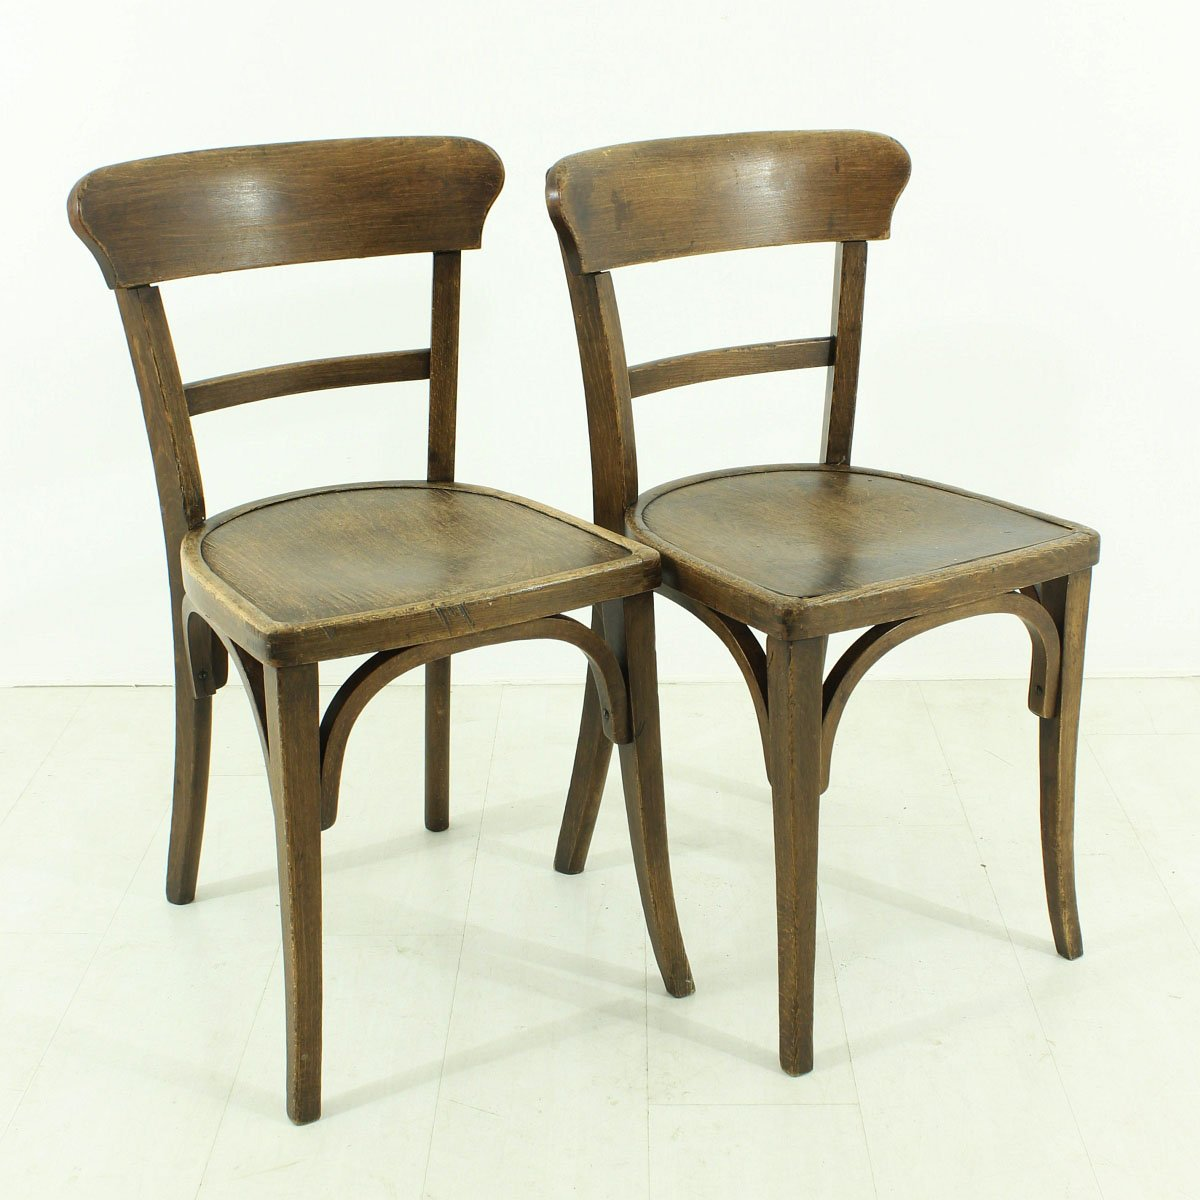 Vintage dining chairs 1930s set of 2 for sale at pamono for Chair design 1930